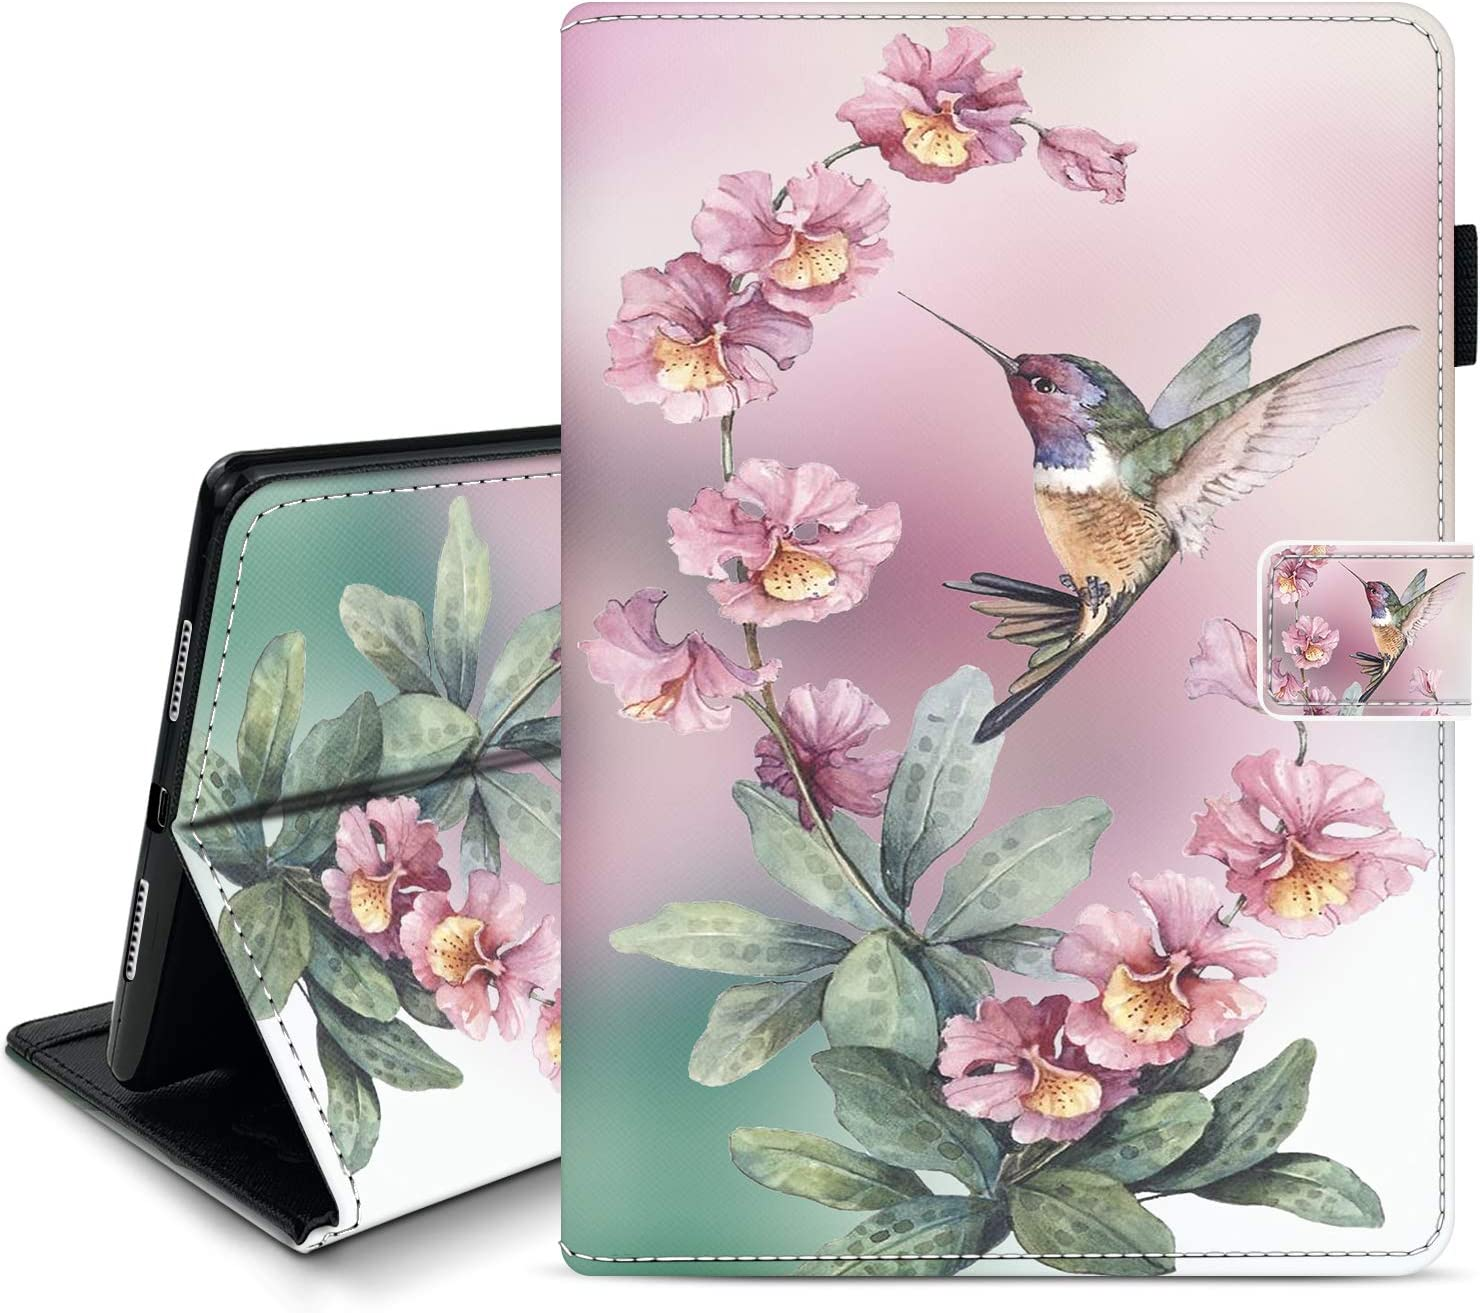 Memoly Case for iPad 10.2 Inch (2020/2019 Model, 8th / 7th Generation),Pink Flowers with Hummingbird iPad Case,Auto Wake/Sleep Cover, Leather